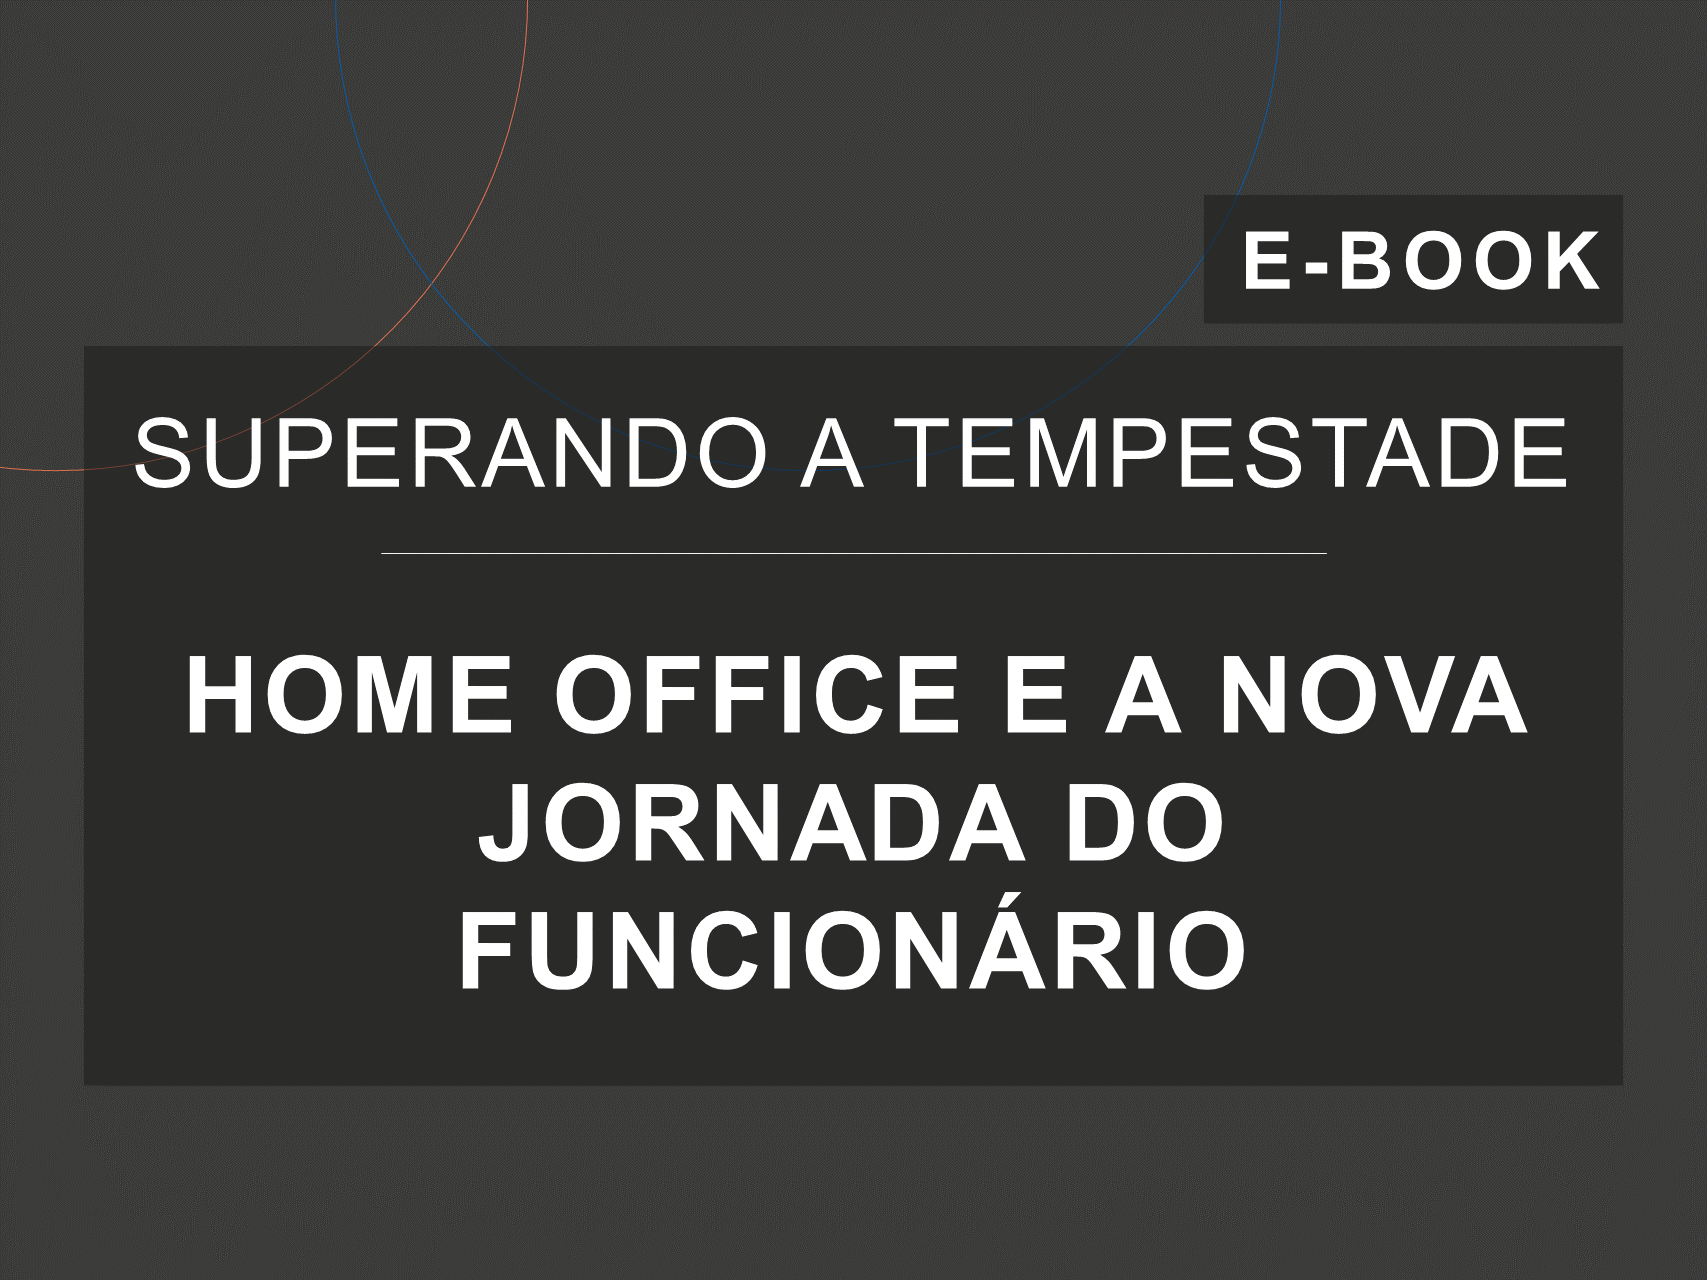 Capa do e-Book da série 'Superando a Tempestade', da Cosin Consulting, sobre 'Home Office e a Nova Jornada do Funcionário'